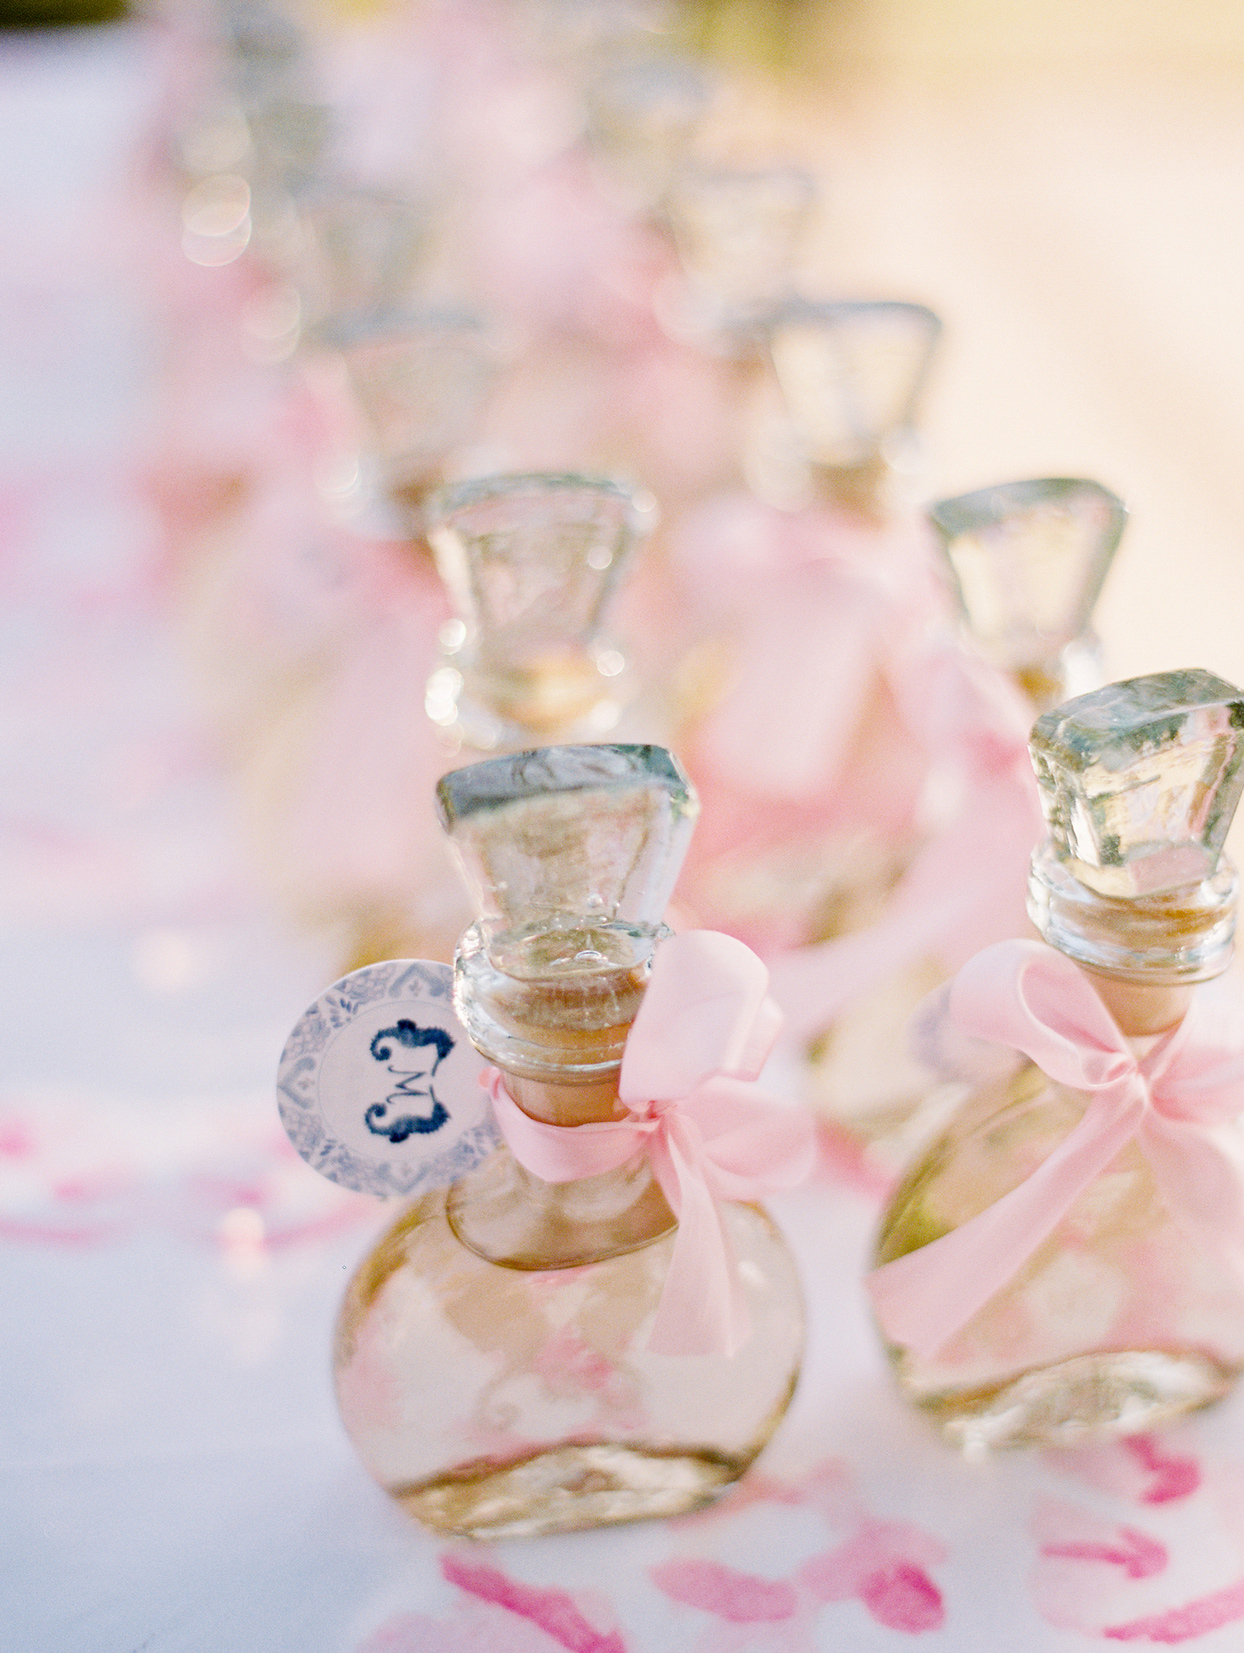 wedding escort crystal bottles of tequila